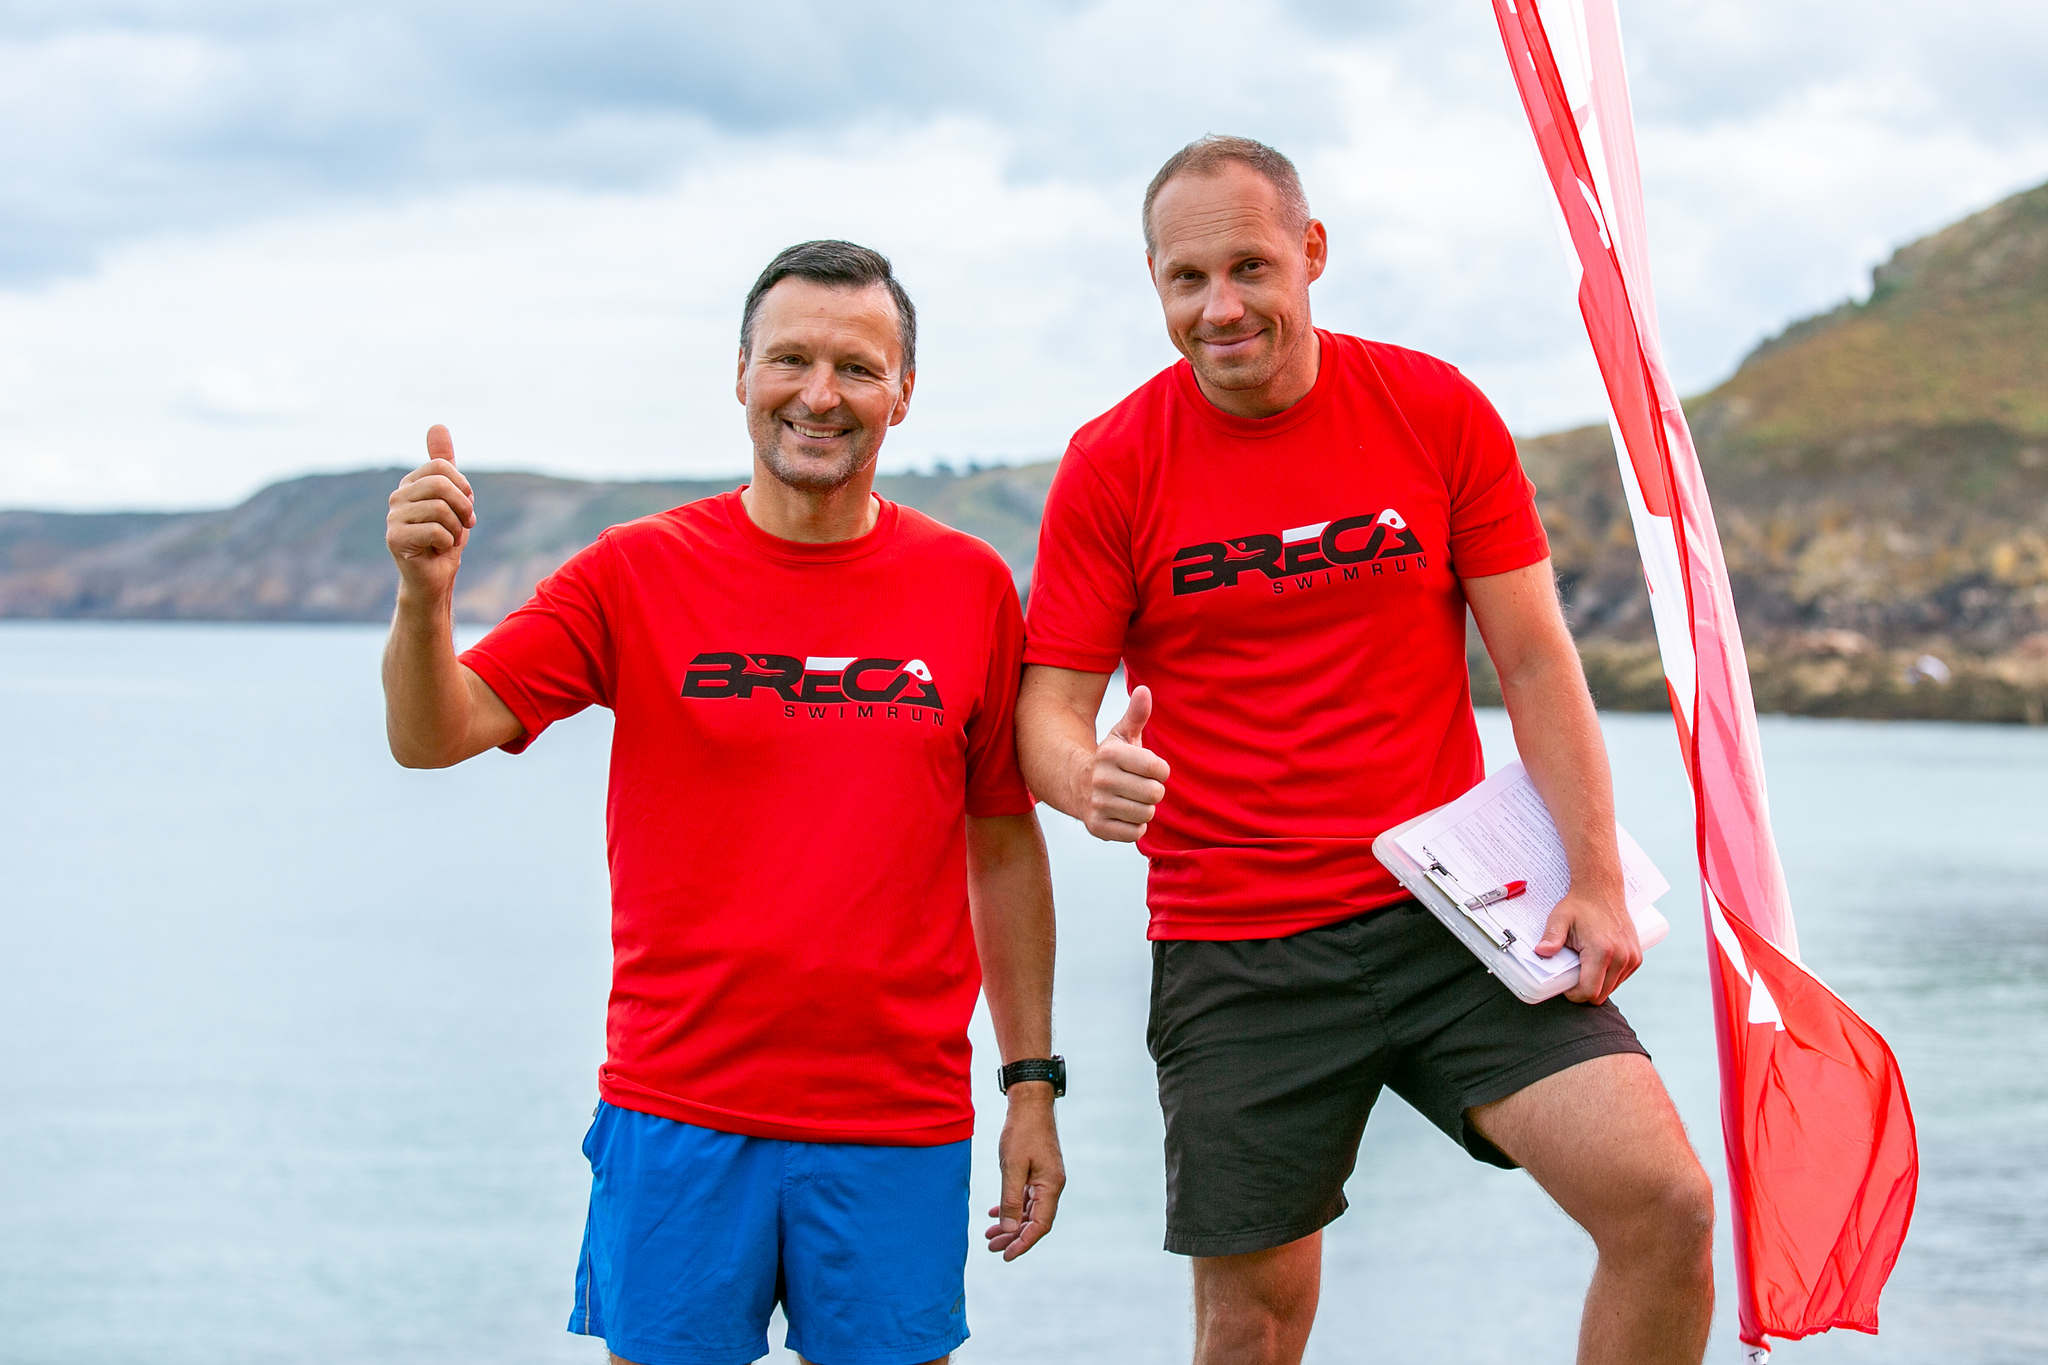 JOIN THE BRECA JERSEY EVENT TEAM -